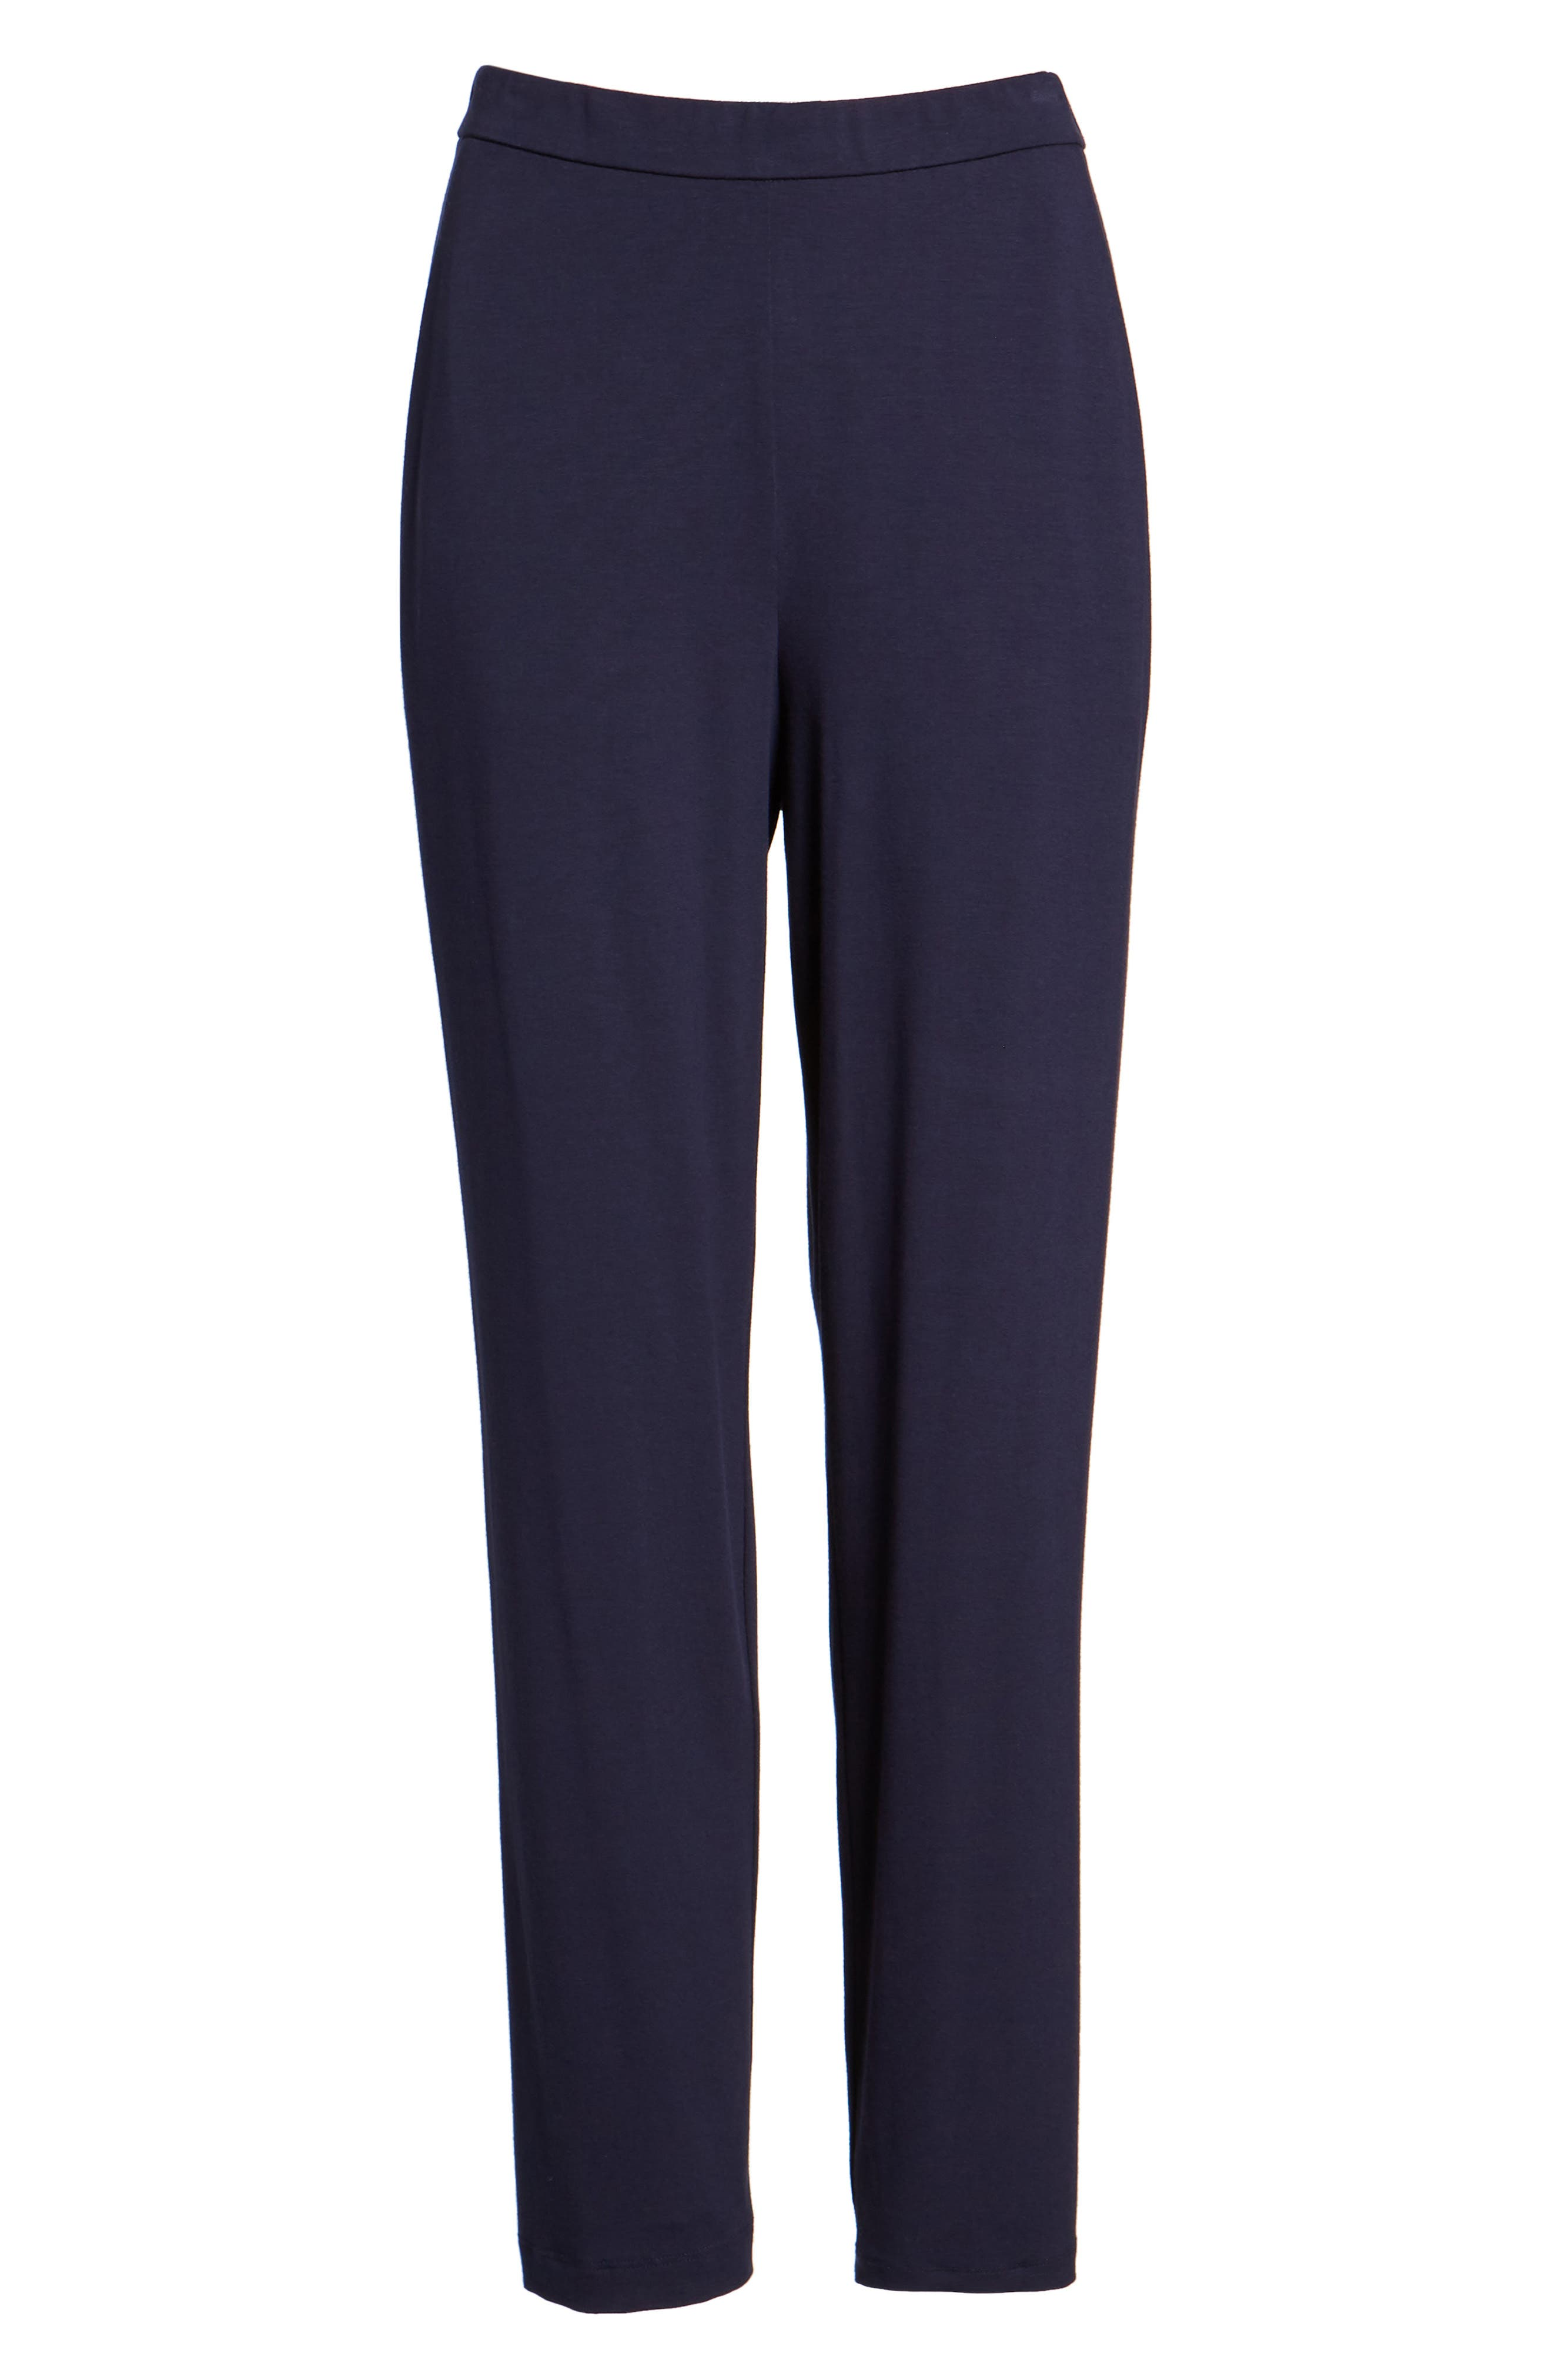 Crop Stretch Knit Pants,                             Alternate thumbnail 7, color,                             MIDNIGHT